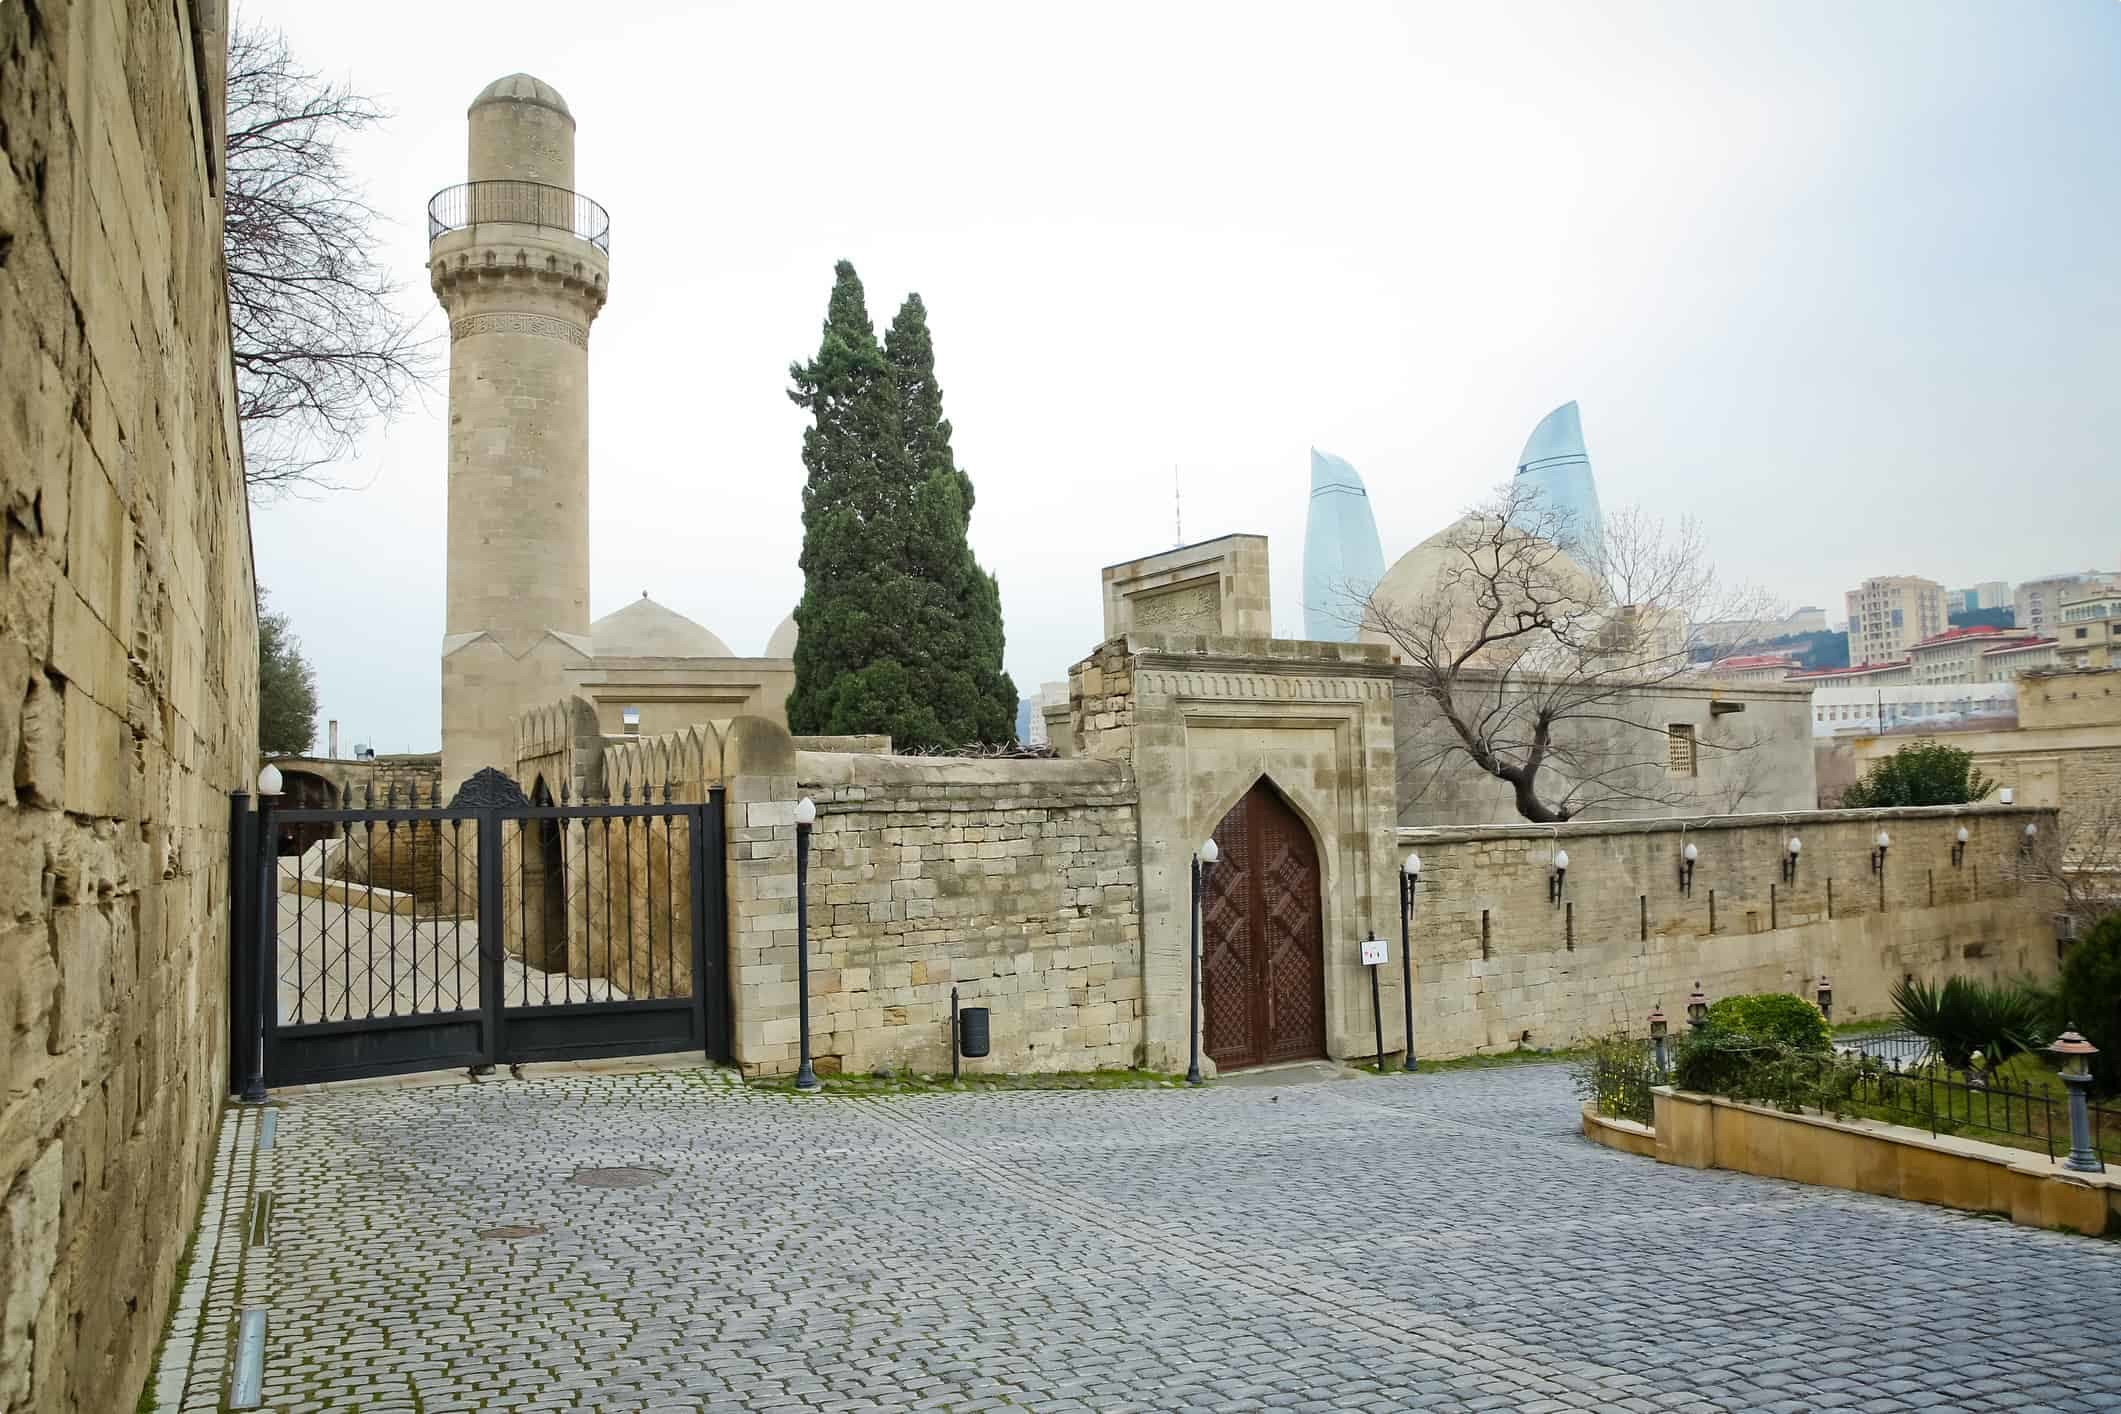 View of the mosque and minaret in the Palace of the Shirvanshahs, Baku, Azerbaijan